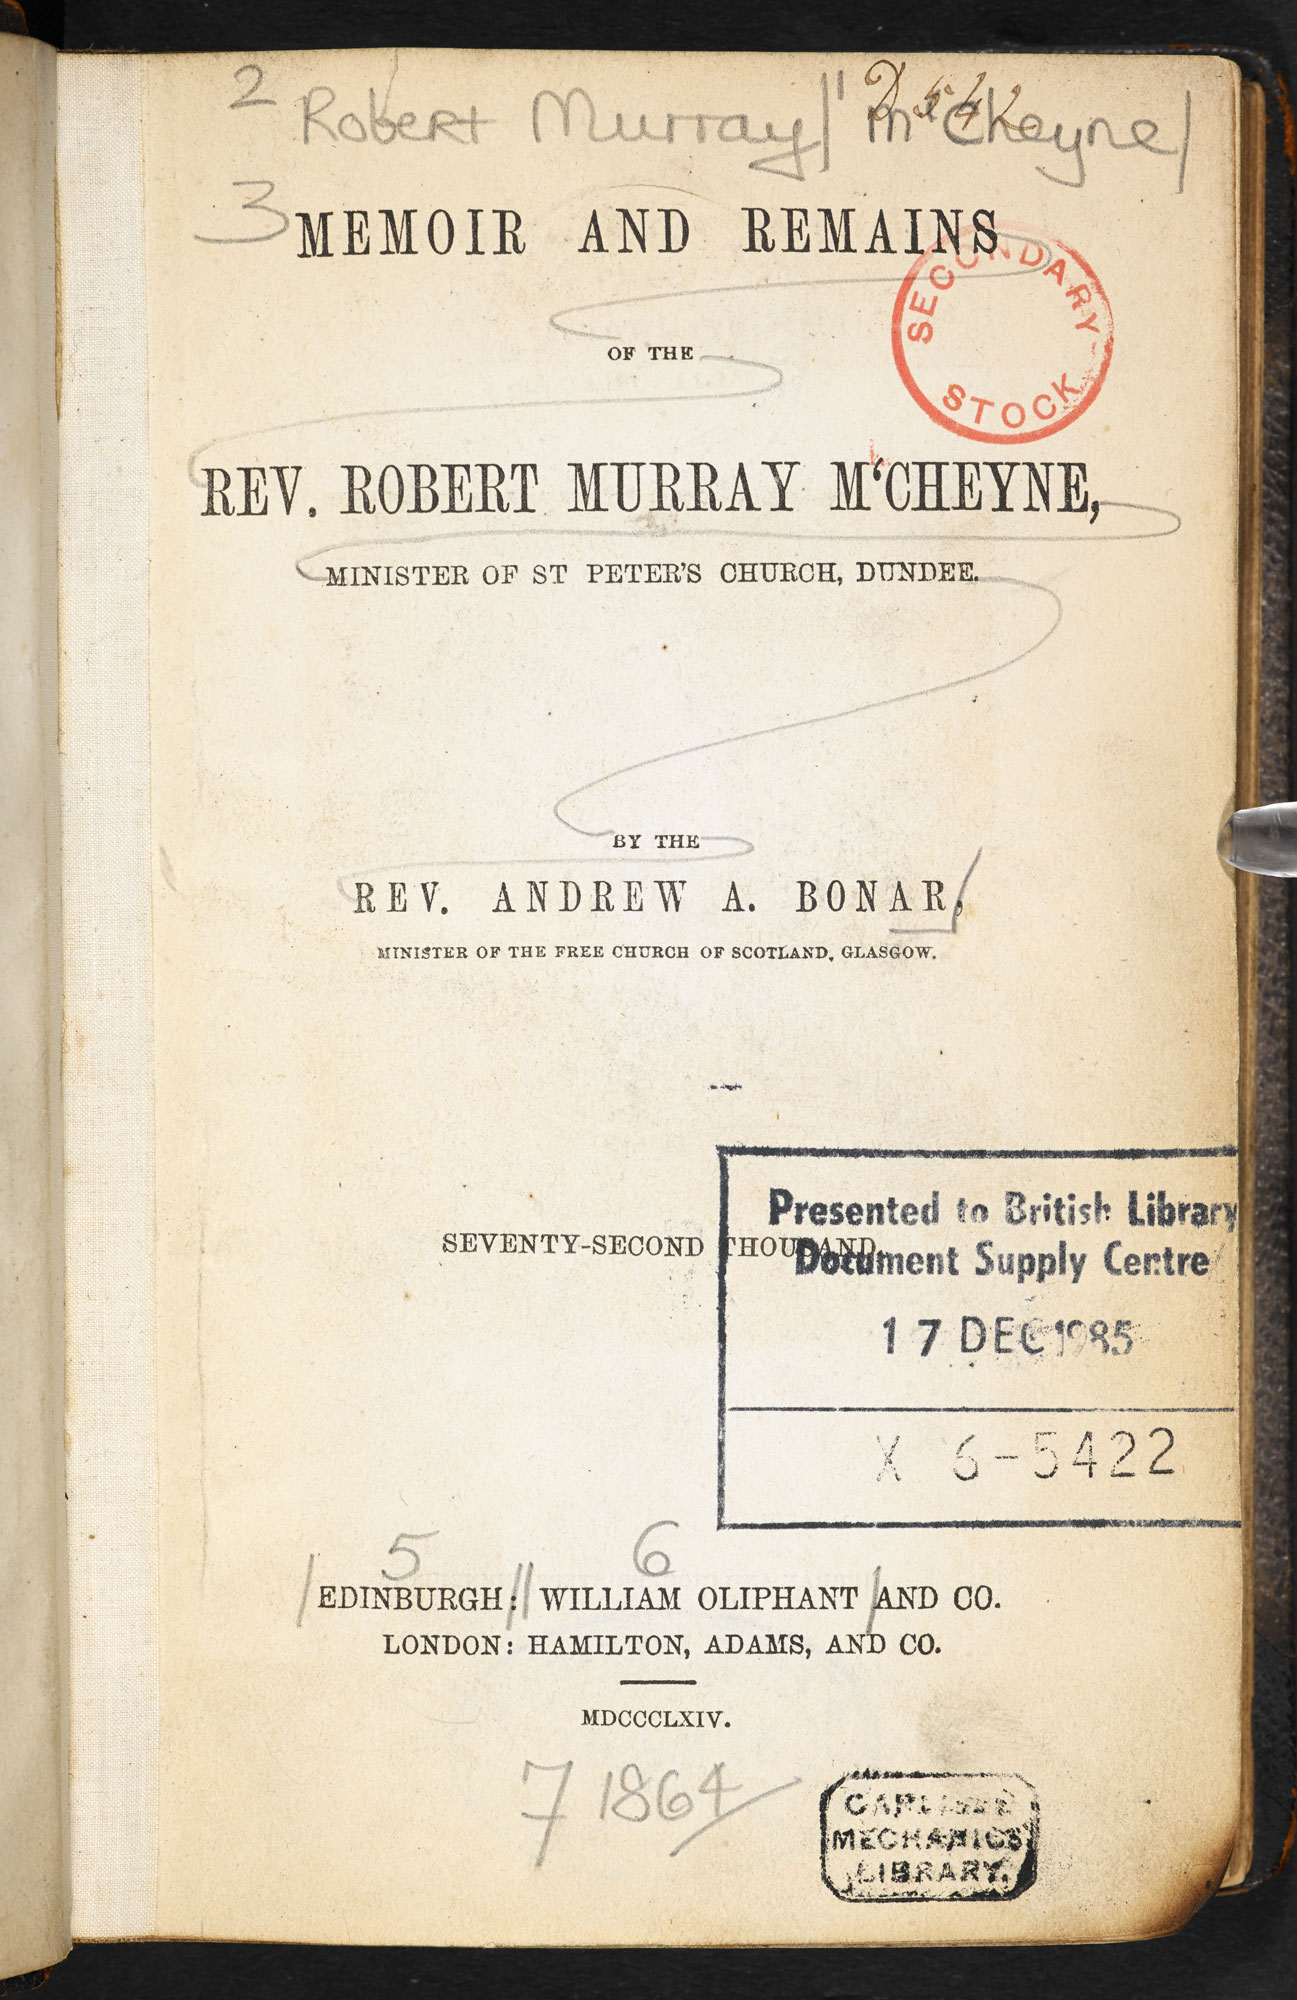 Memoir and remains of the Rev. Robert Murray M'Cheyne  [page: title page]